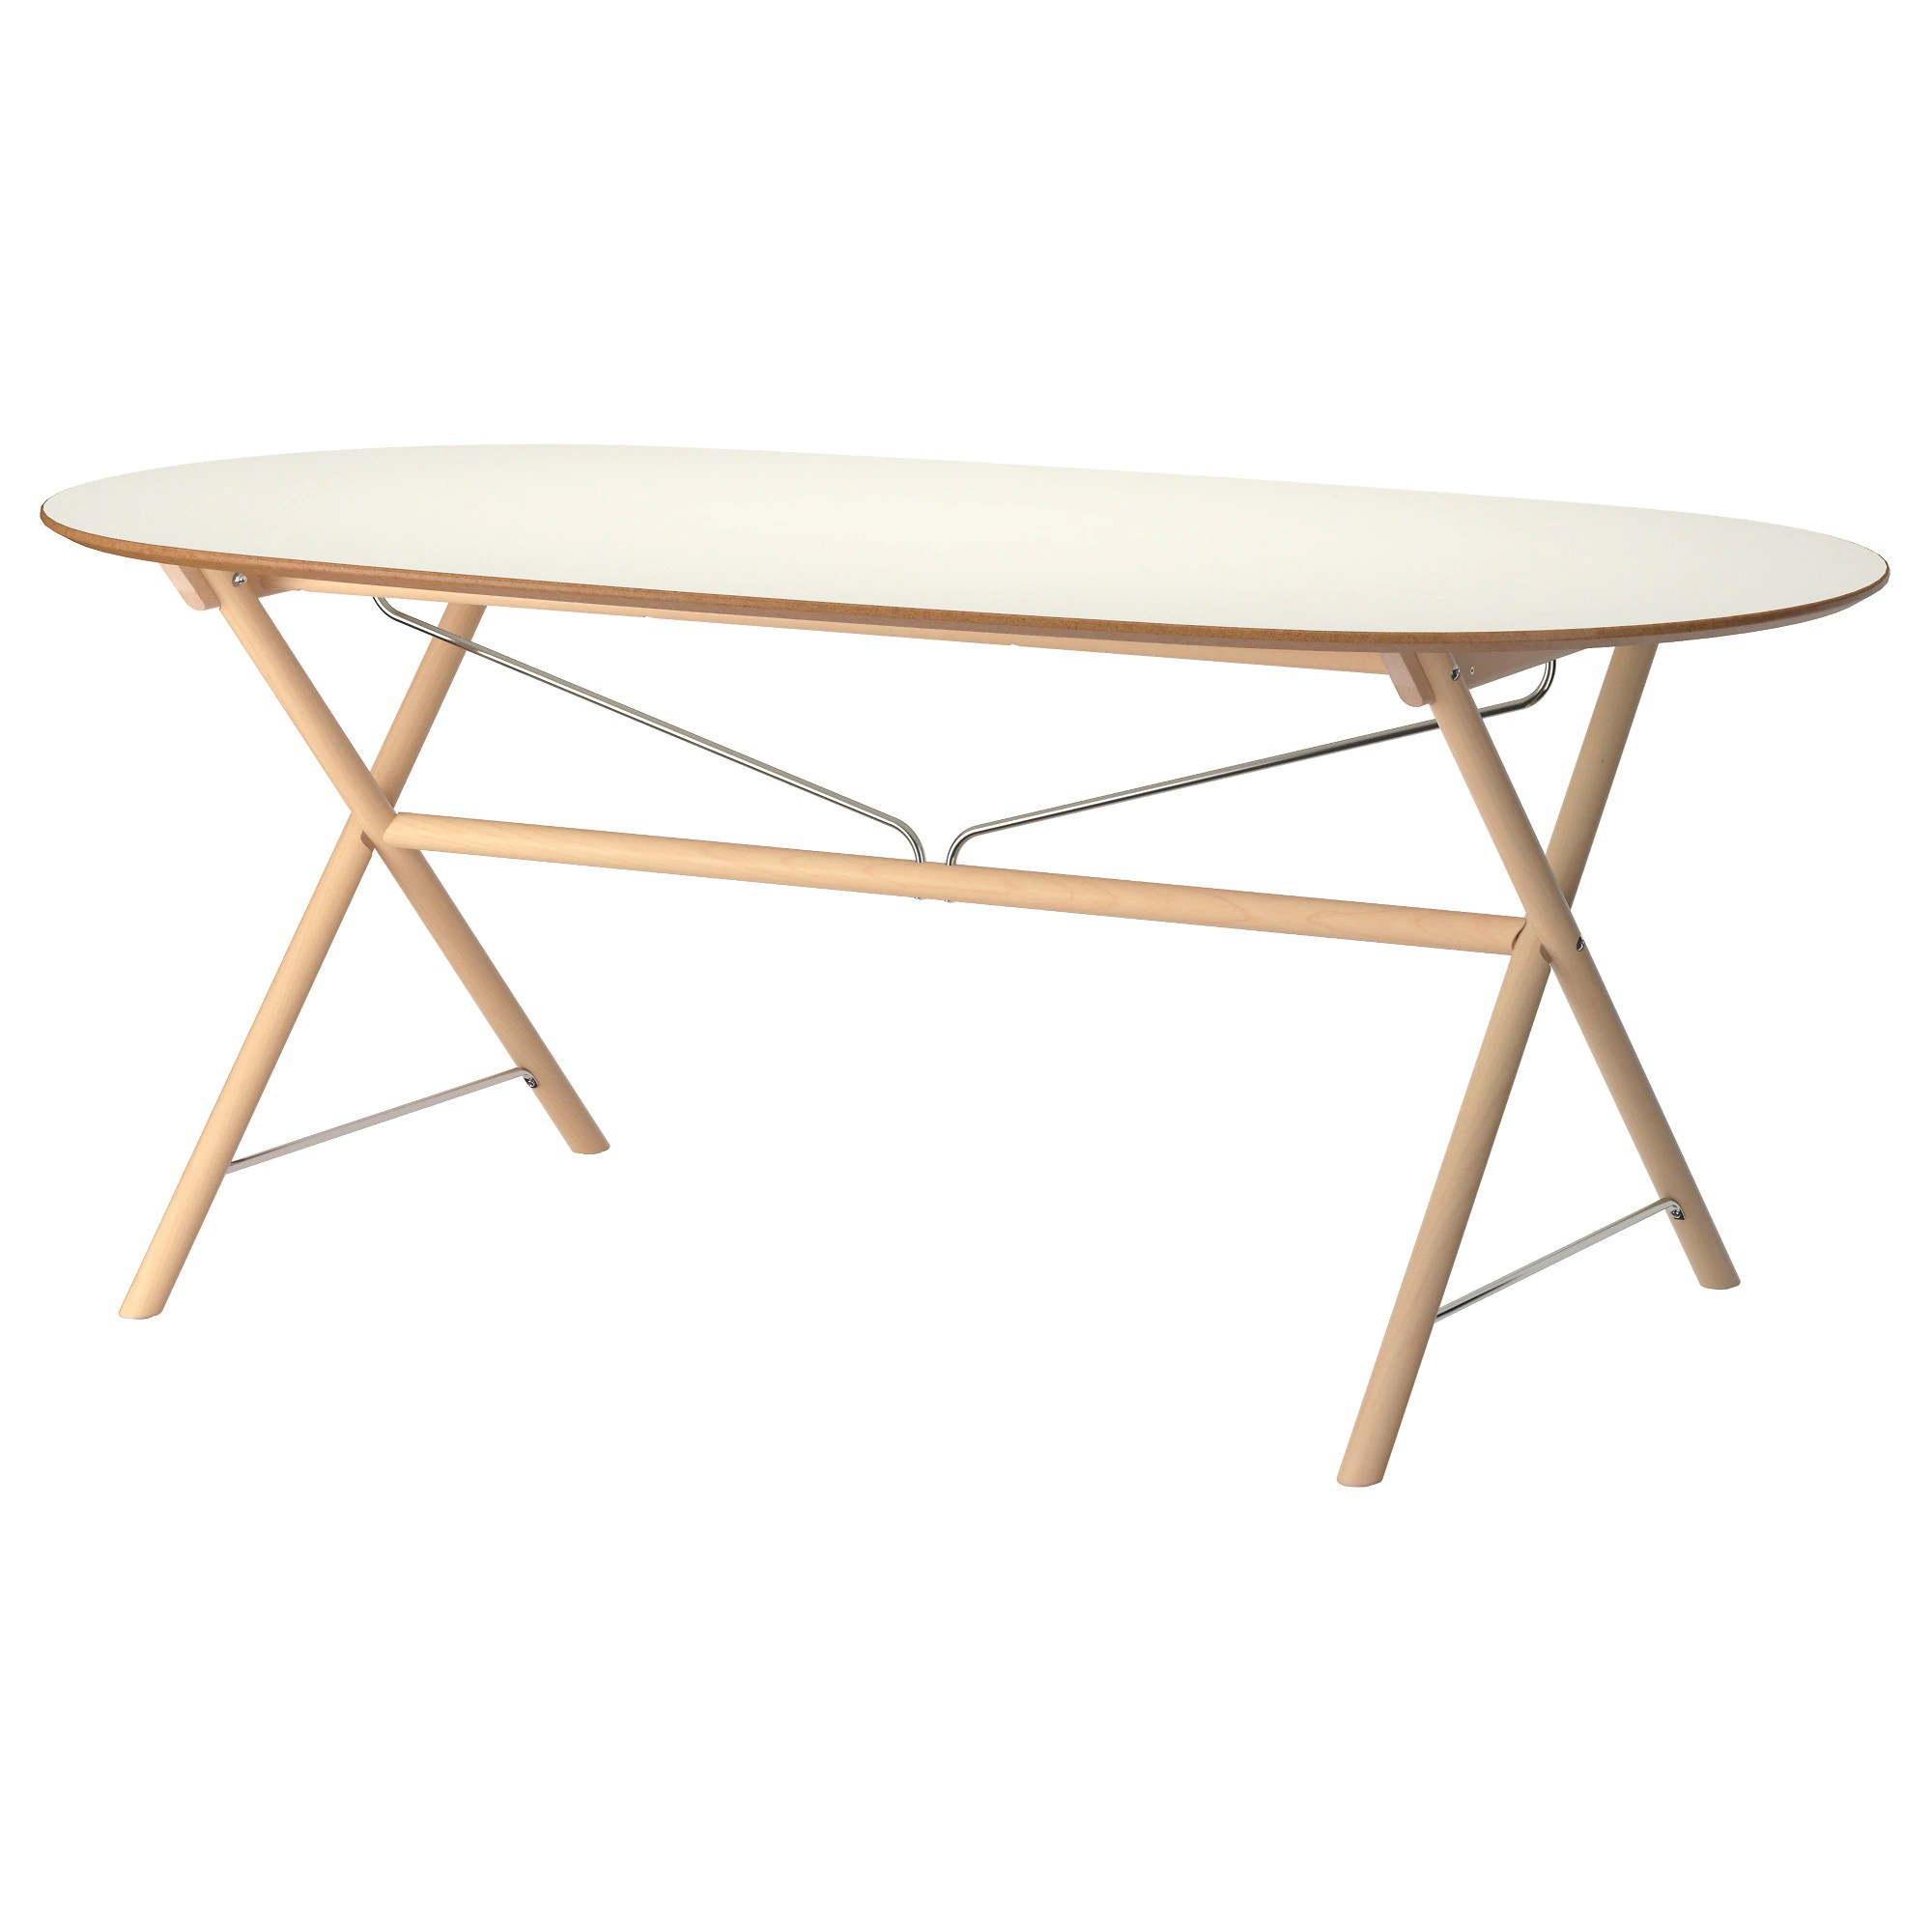 Folding Wooden Table Ikea SlÄhult Table White Birch Dalshult White Birch